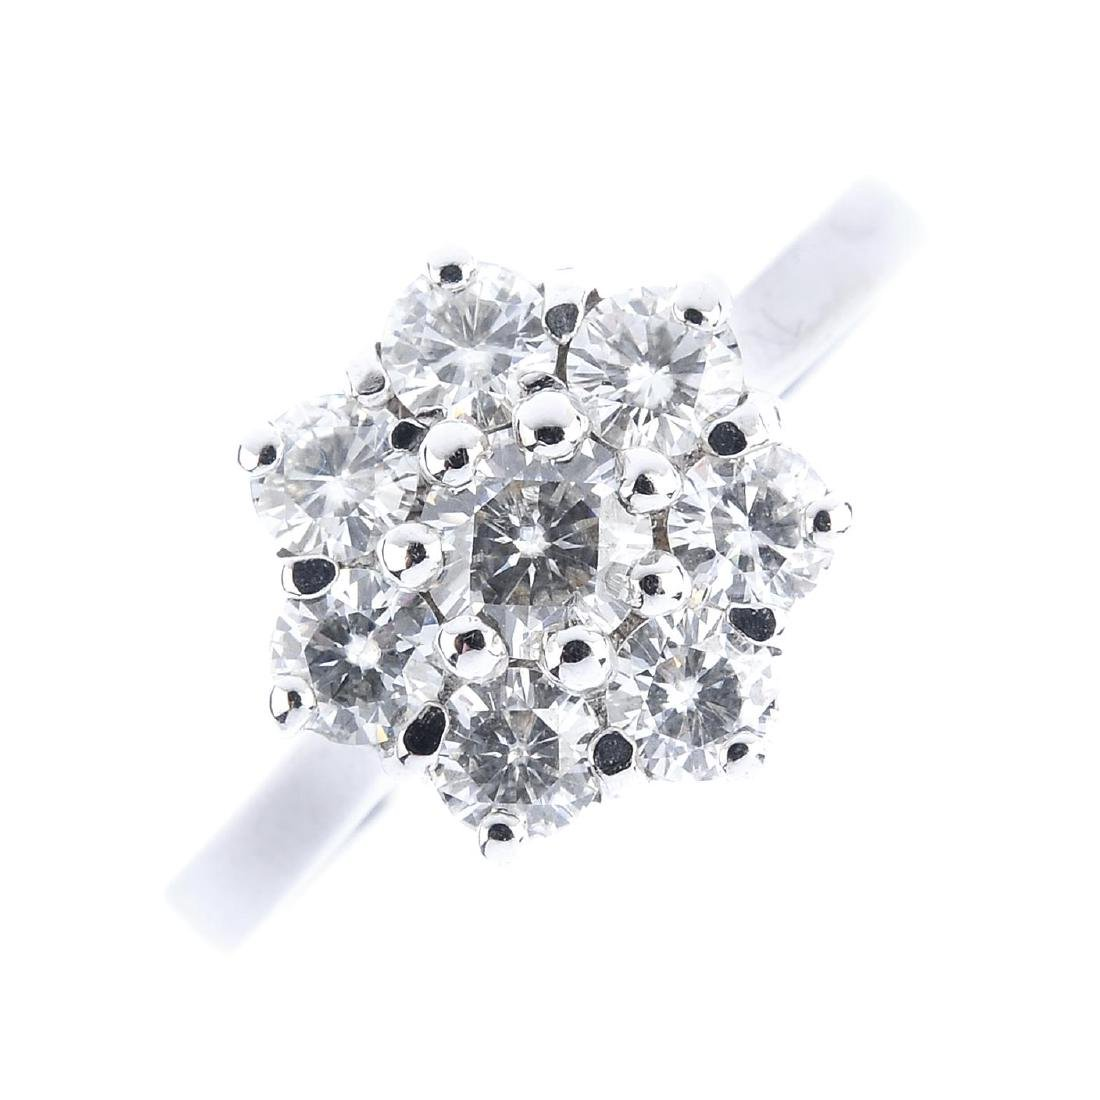 A 9ct gold diamond cluster ring. The brilliant-cut